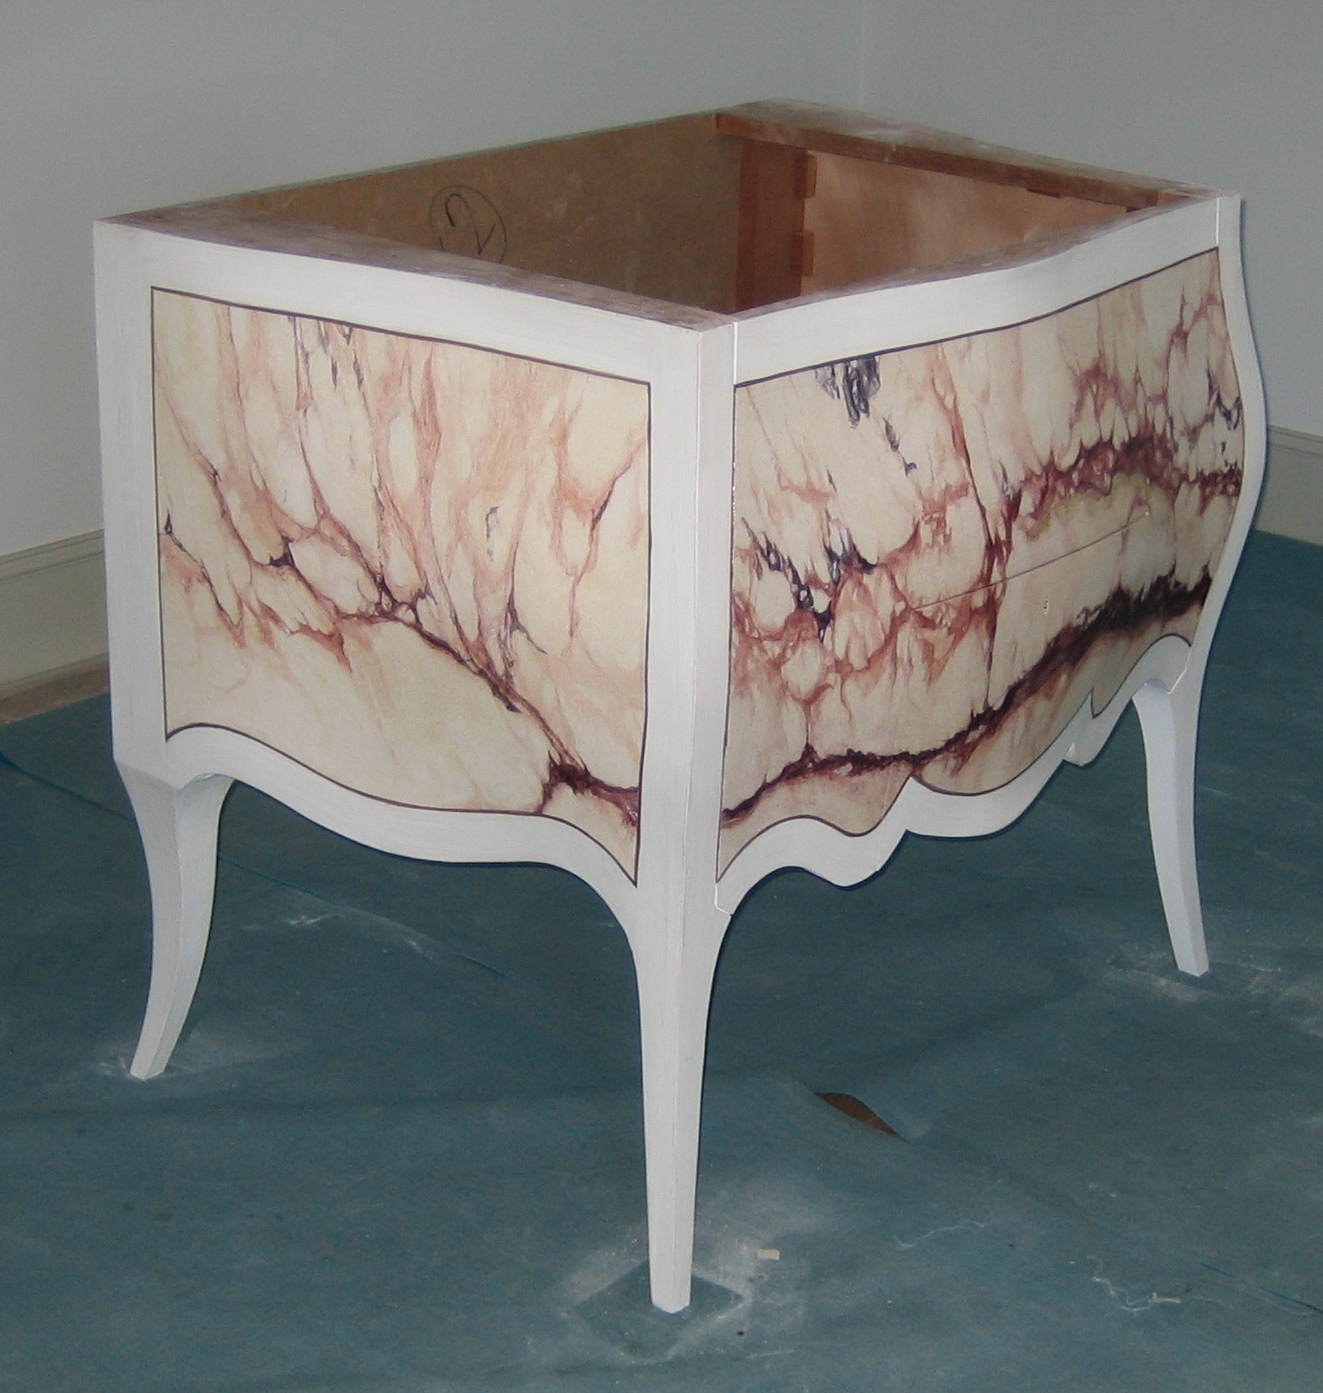 Marbling onto furniture